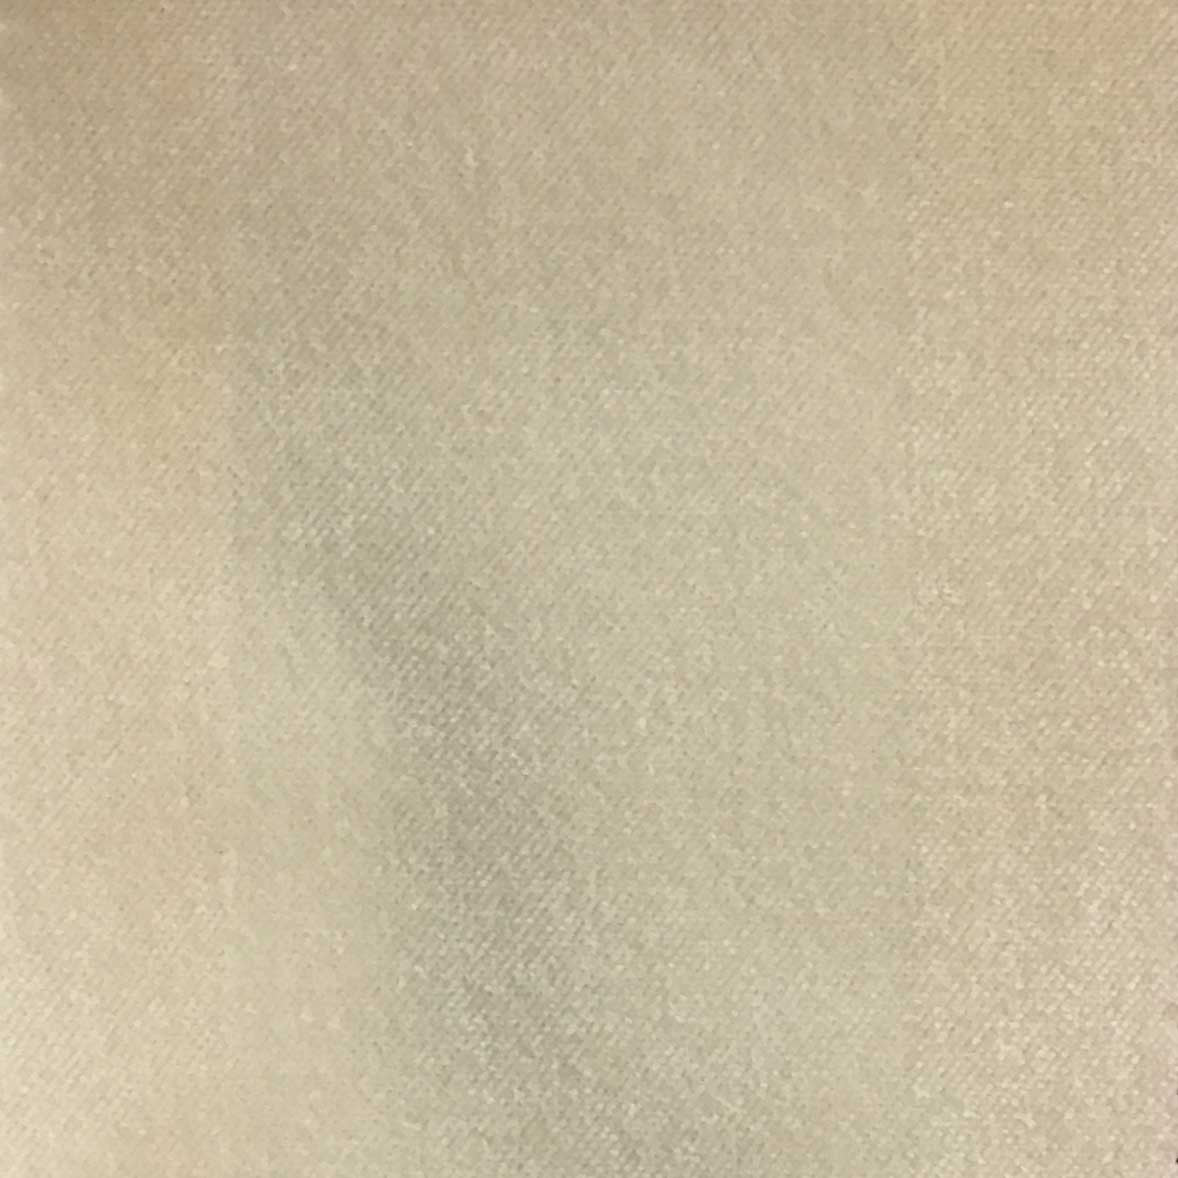 Seafoam Green Home Decor Bowie 100 Cotton Velvet Upholstery Fabric By The Yard